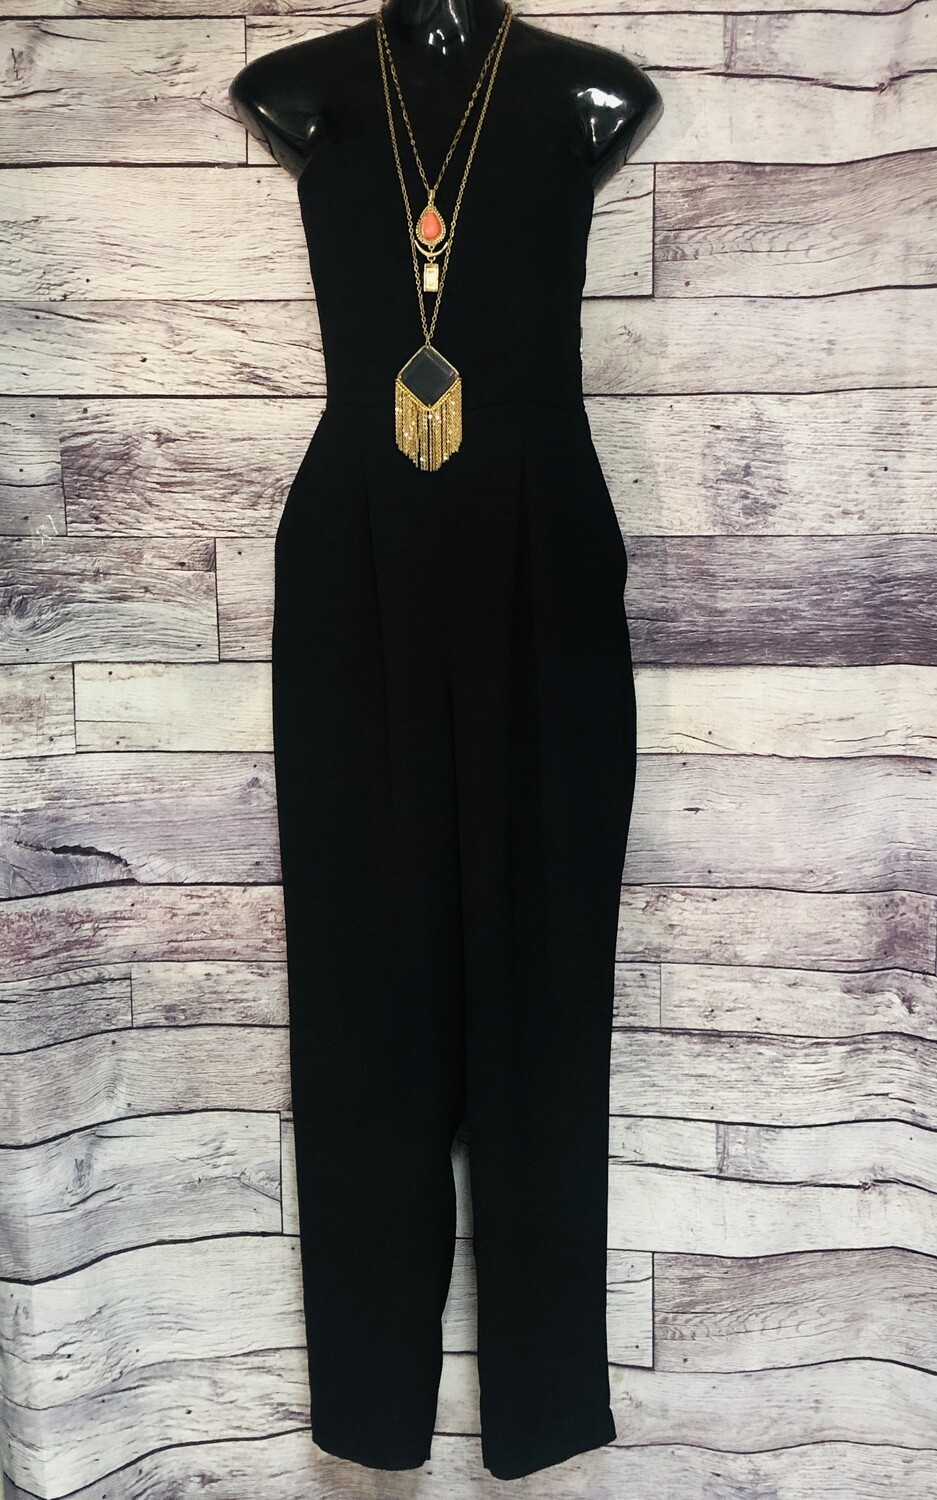 NEW VINCE CAMUTO Holiday Glam Black Strapless Jumpsuit Size 10 $149